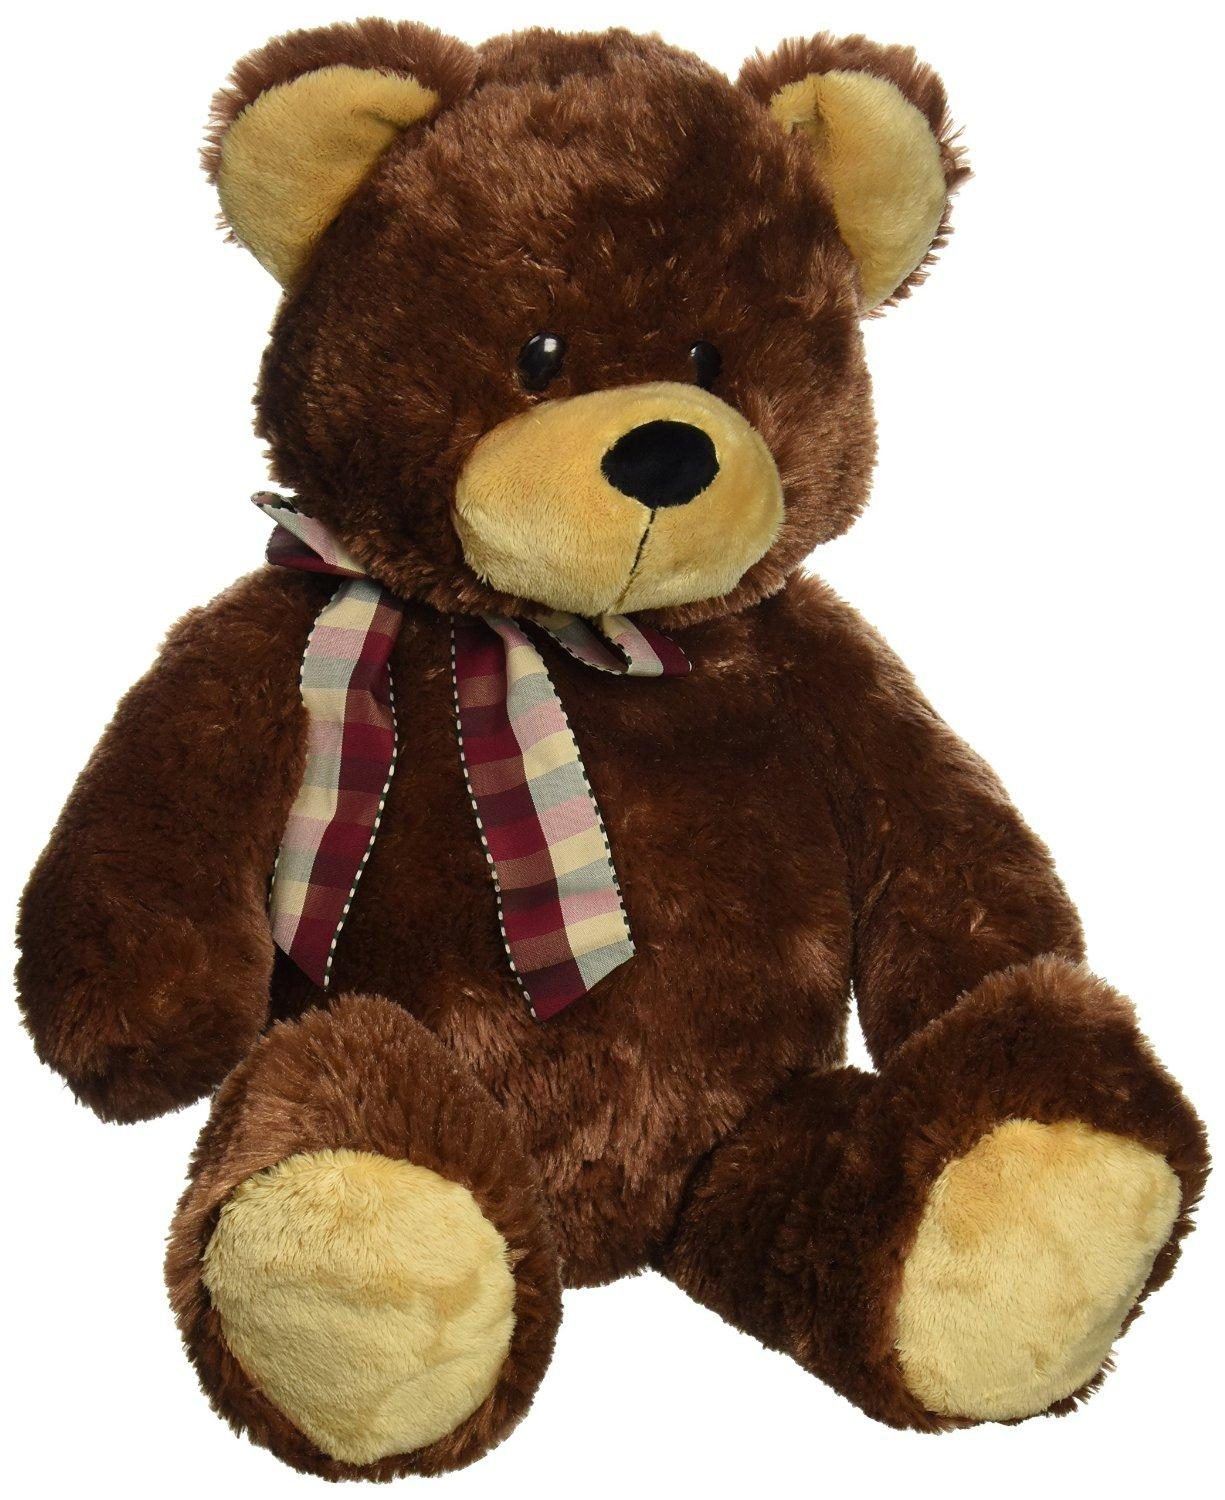 Gund TD Teddy Bear Stuffed Animal